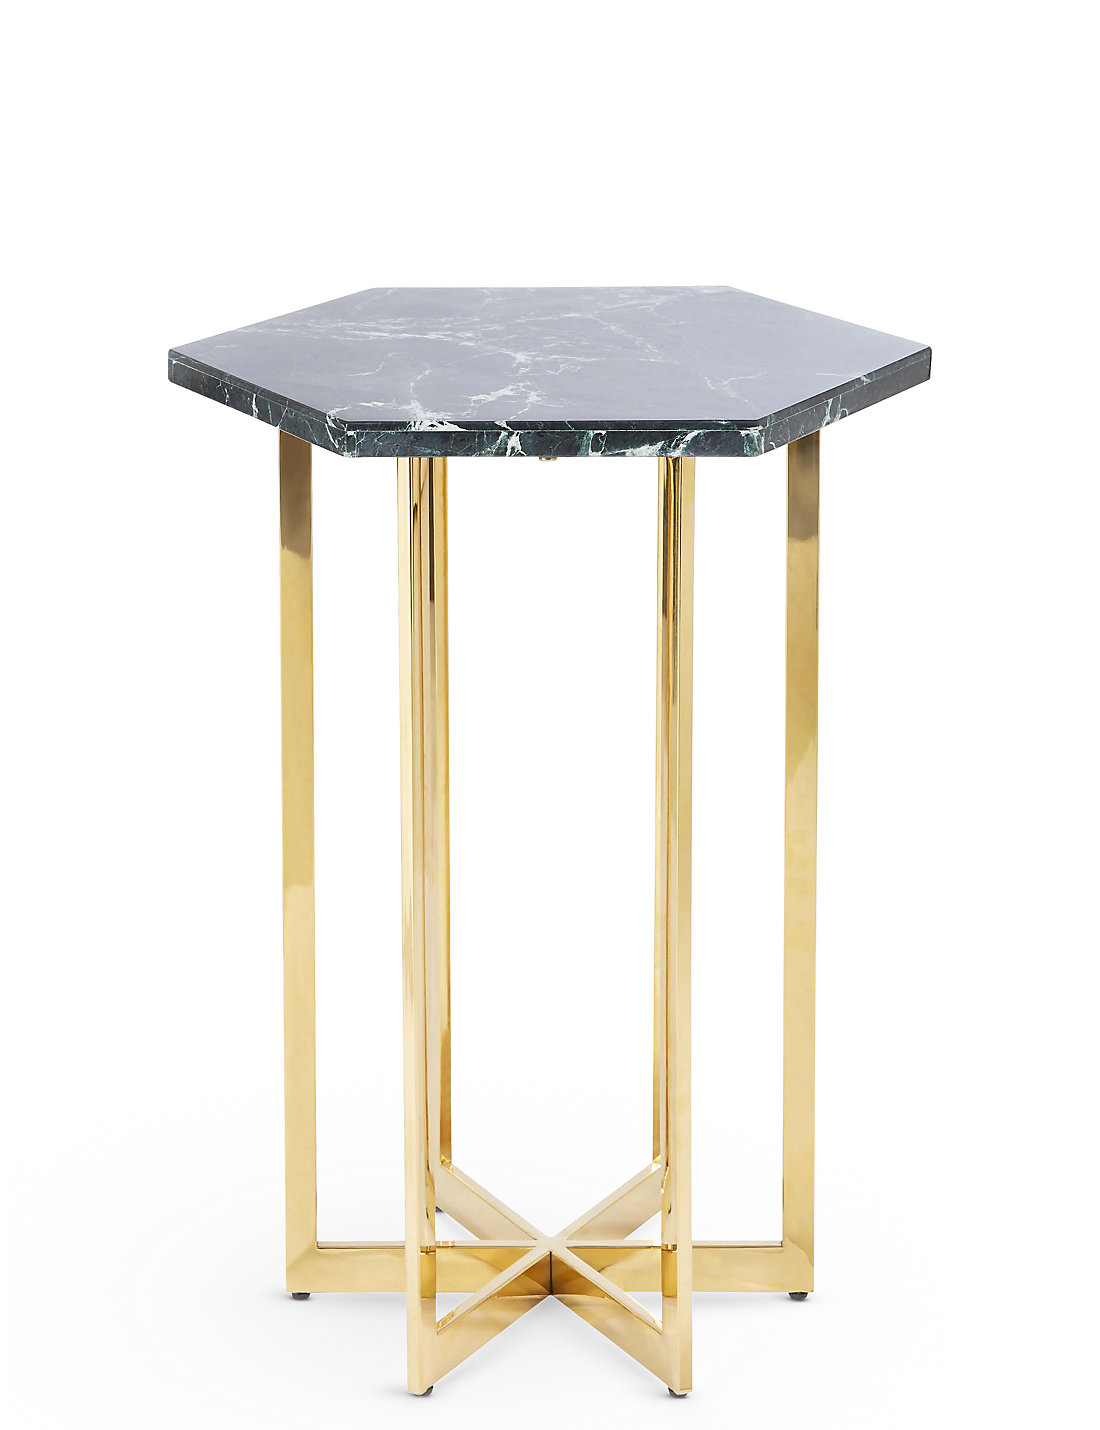 Ava green marble side table ms ava green marble side table geotapseo Choice Image